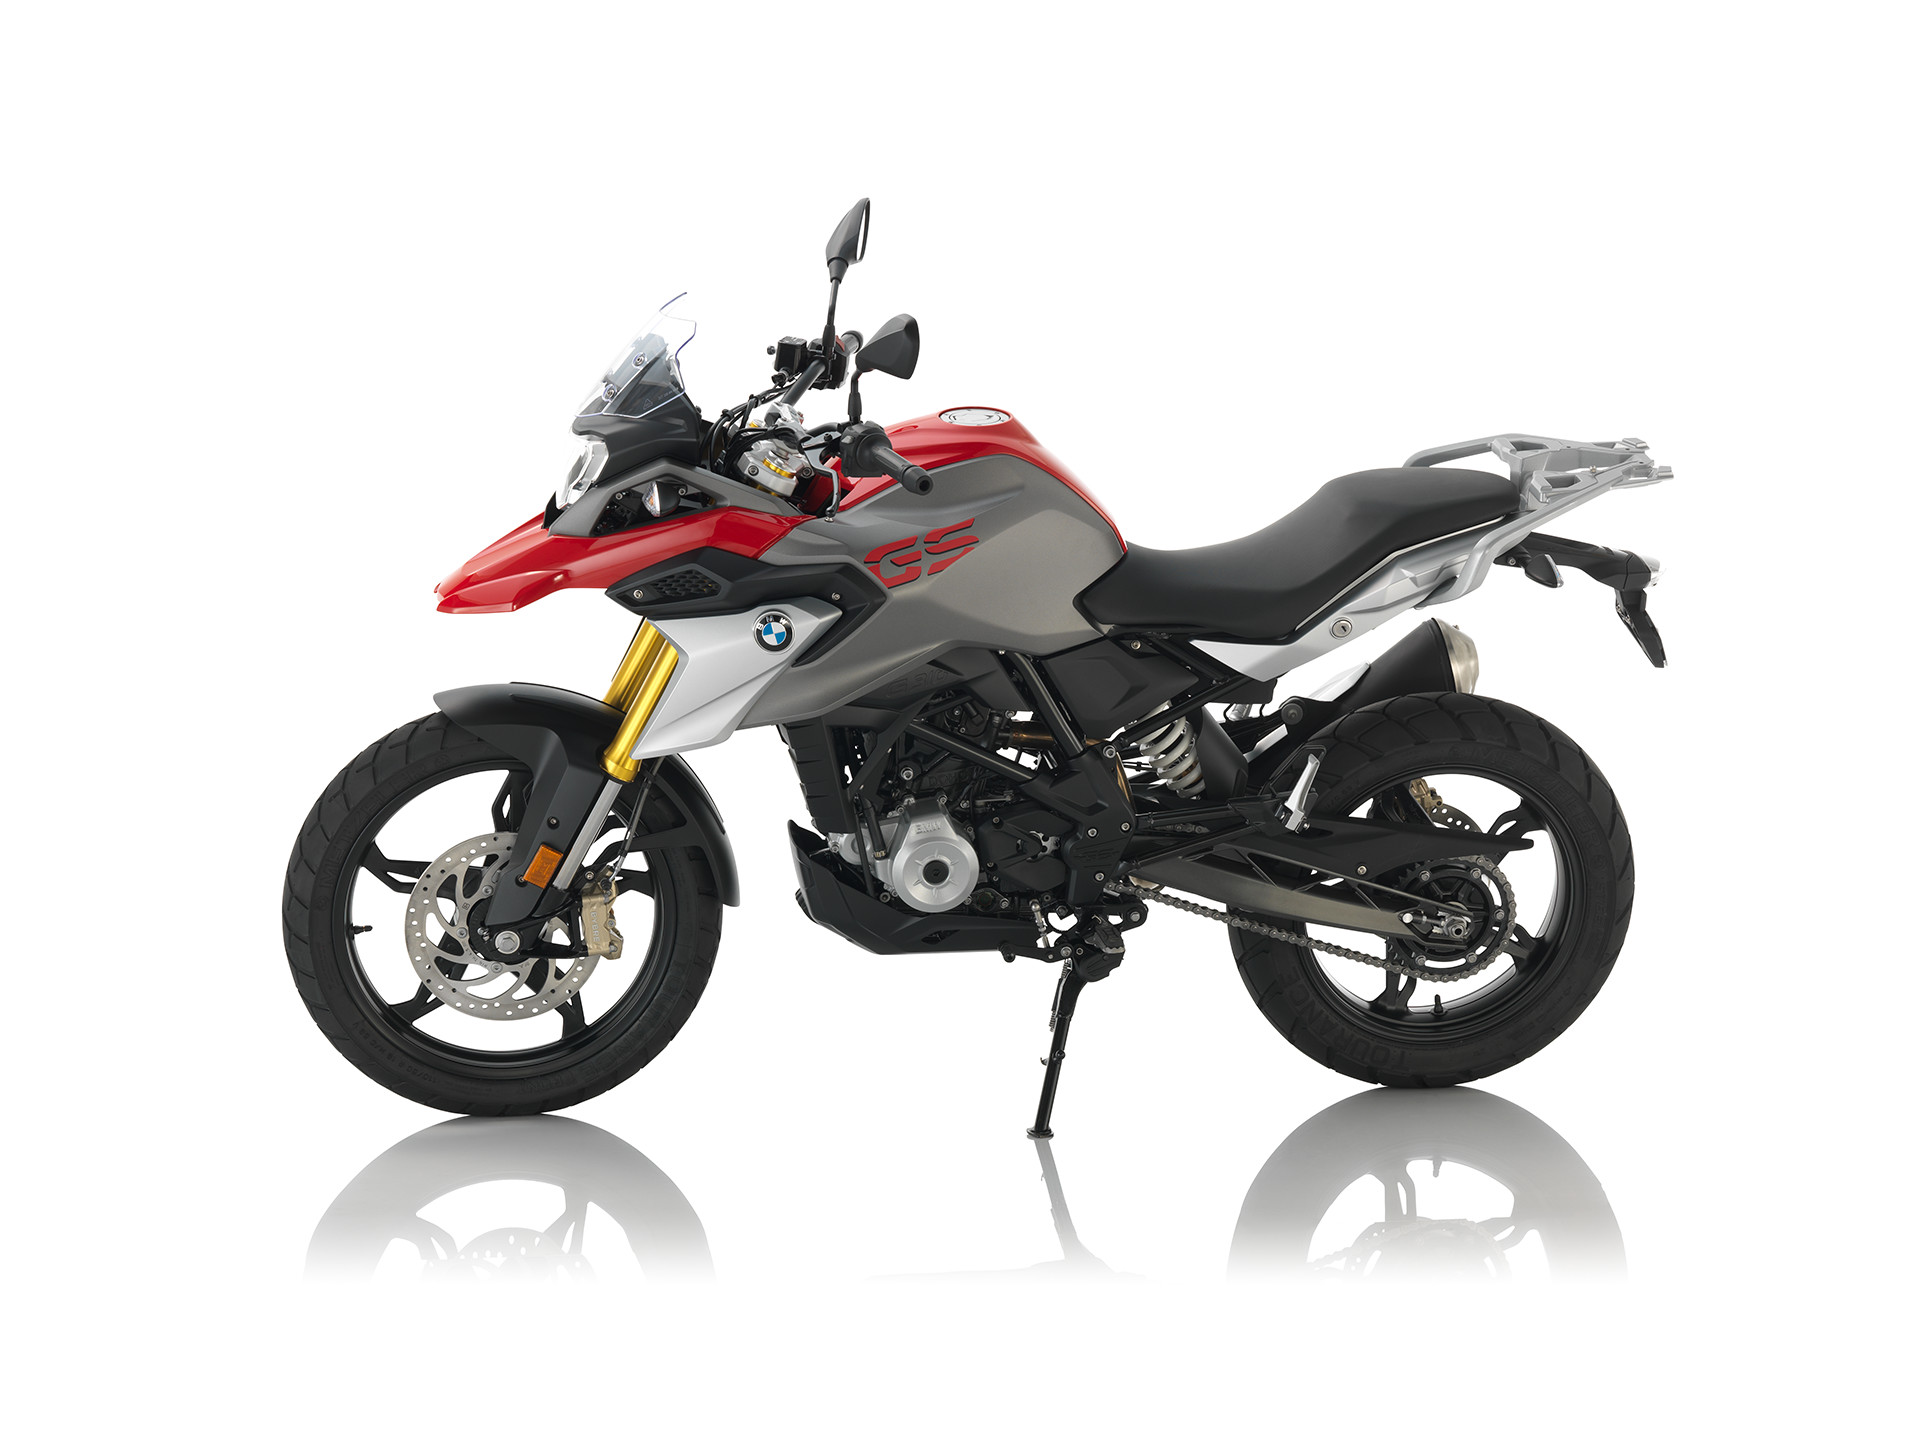 rally raid builds adv kit for bmw g310 gs canada moto guide. Black Bedroom Furniture Sets. Home Design Ideas